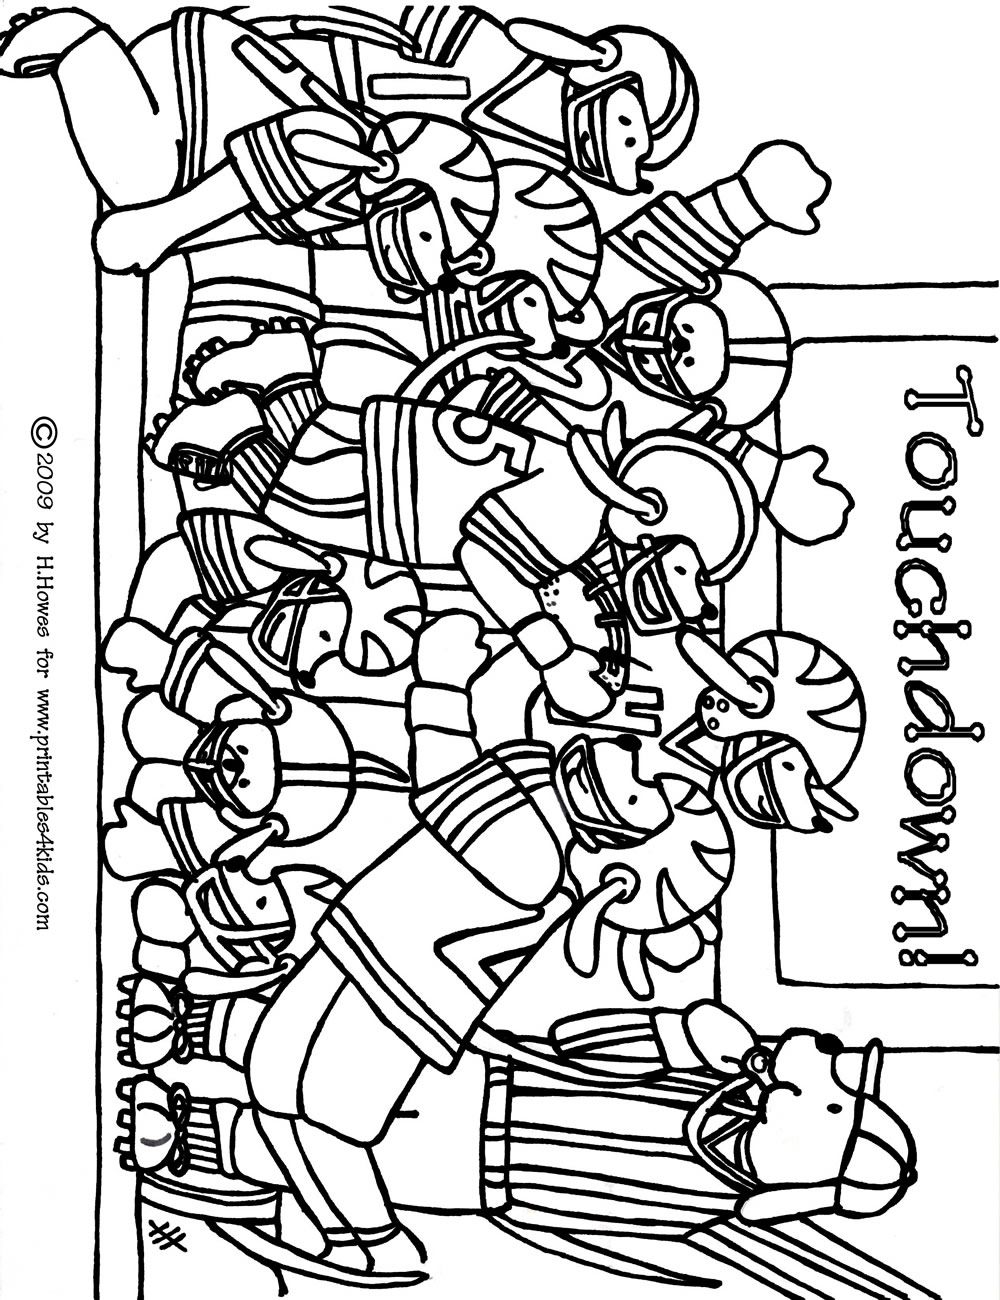 1000x1300 Football Coloring Pages Printable Free Coloring Page Football